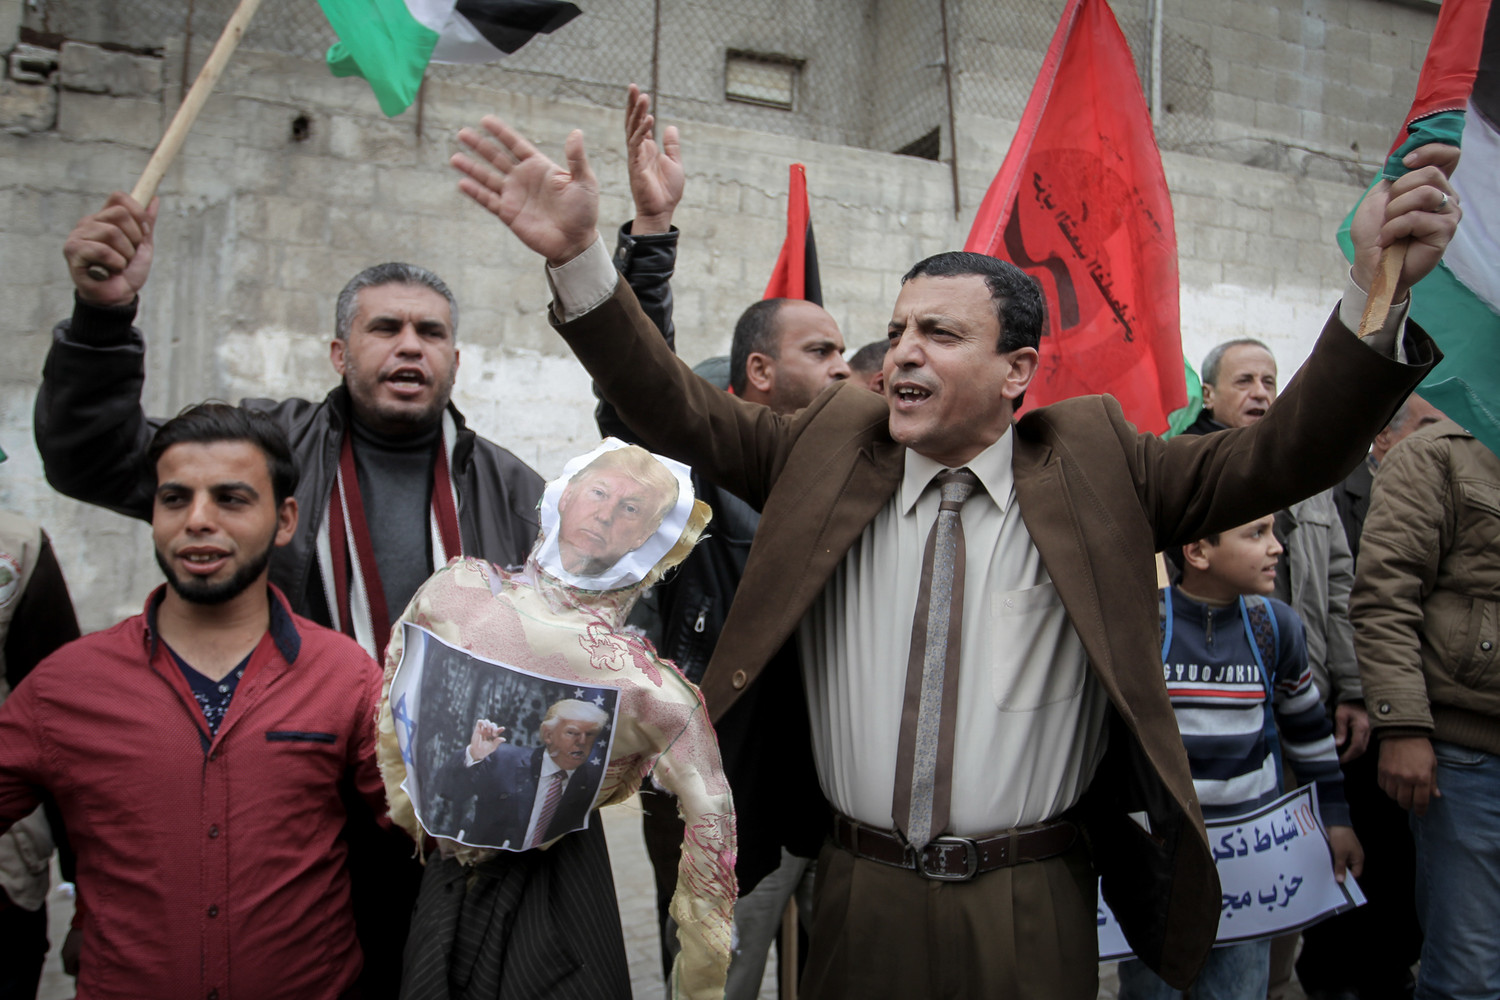 Palestinians protest U.S. aid cuts, at U.N. offices at the Khan Yunis refugee camp in the Gaza Strip on Feb. 11.